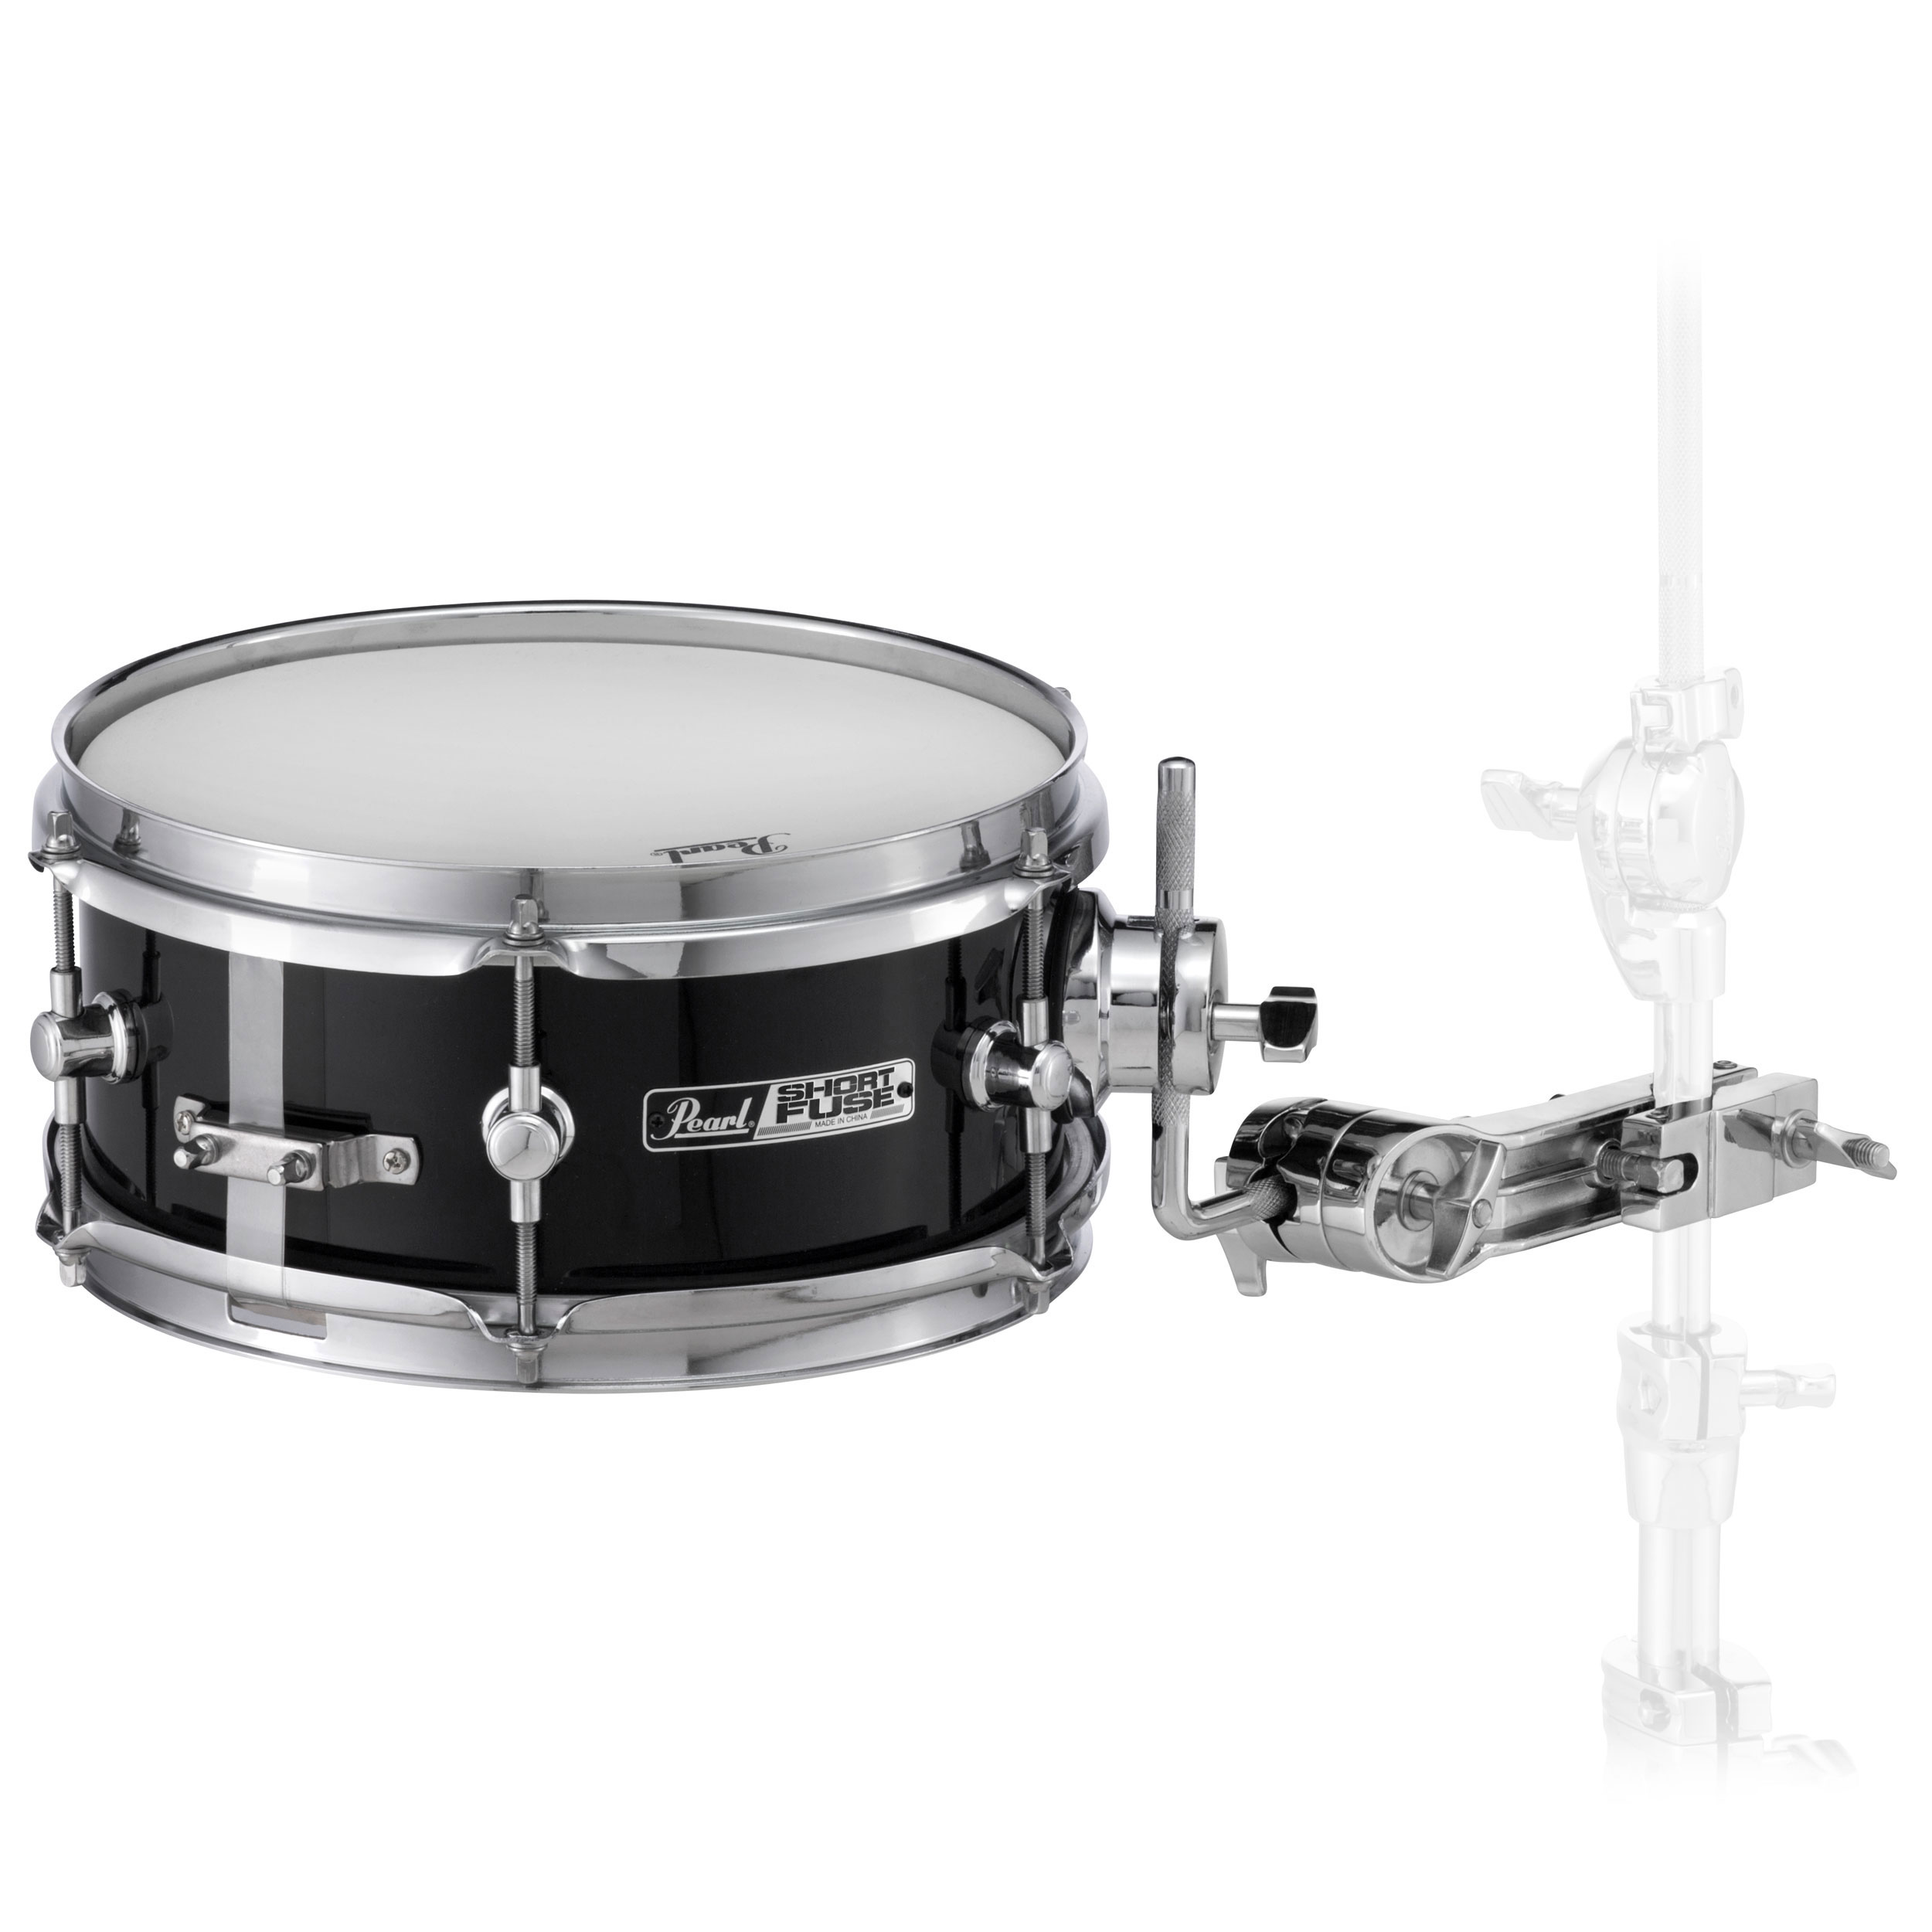 "Pearl 10"" x 4.5"" Short Fuse Snare Drum"